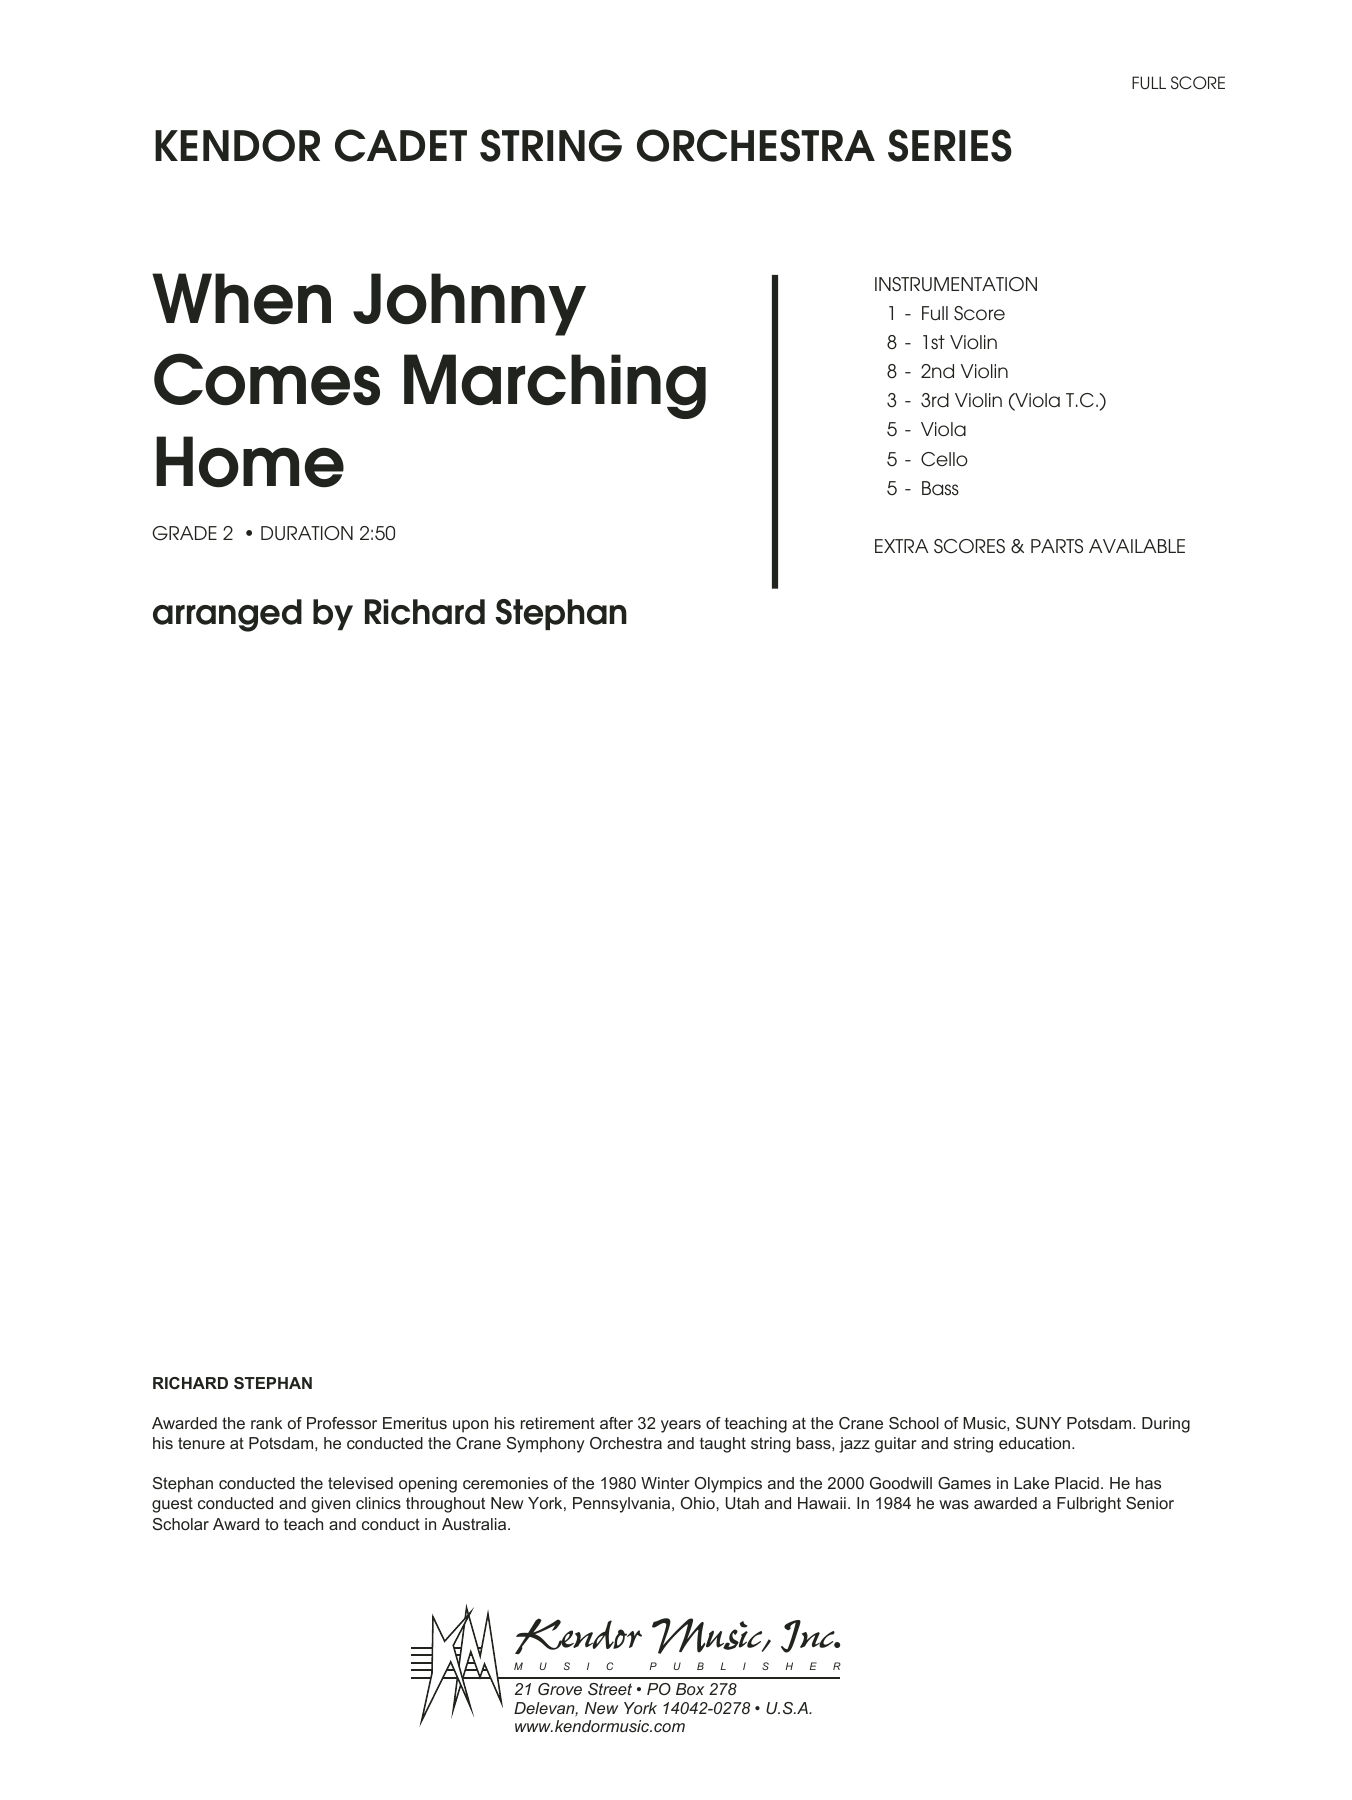 When Johnny Comes Marching Home - Full Score